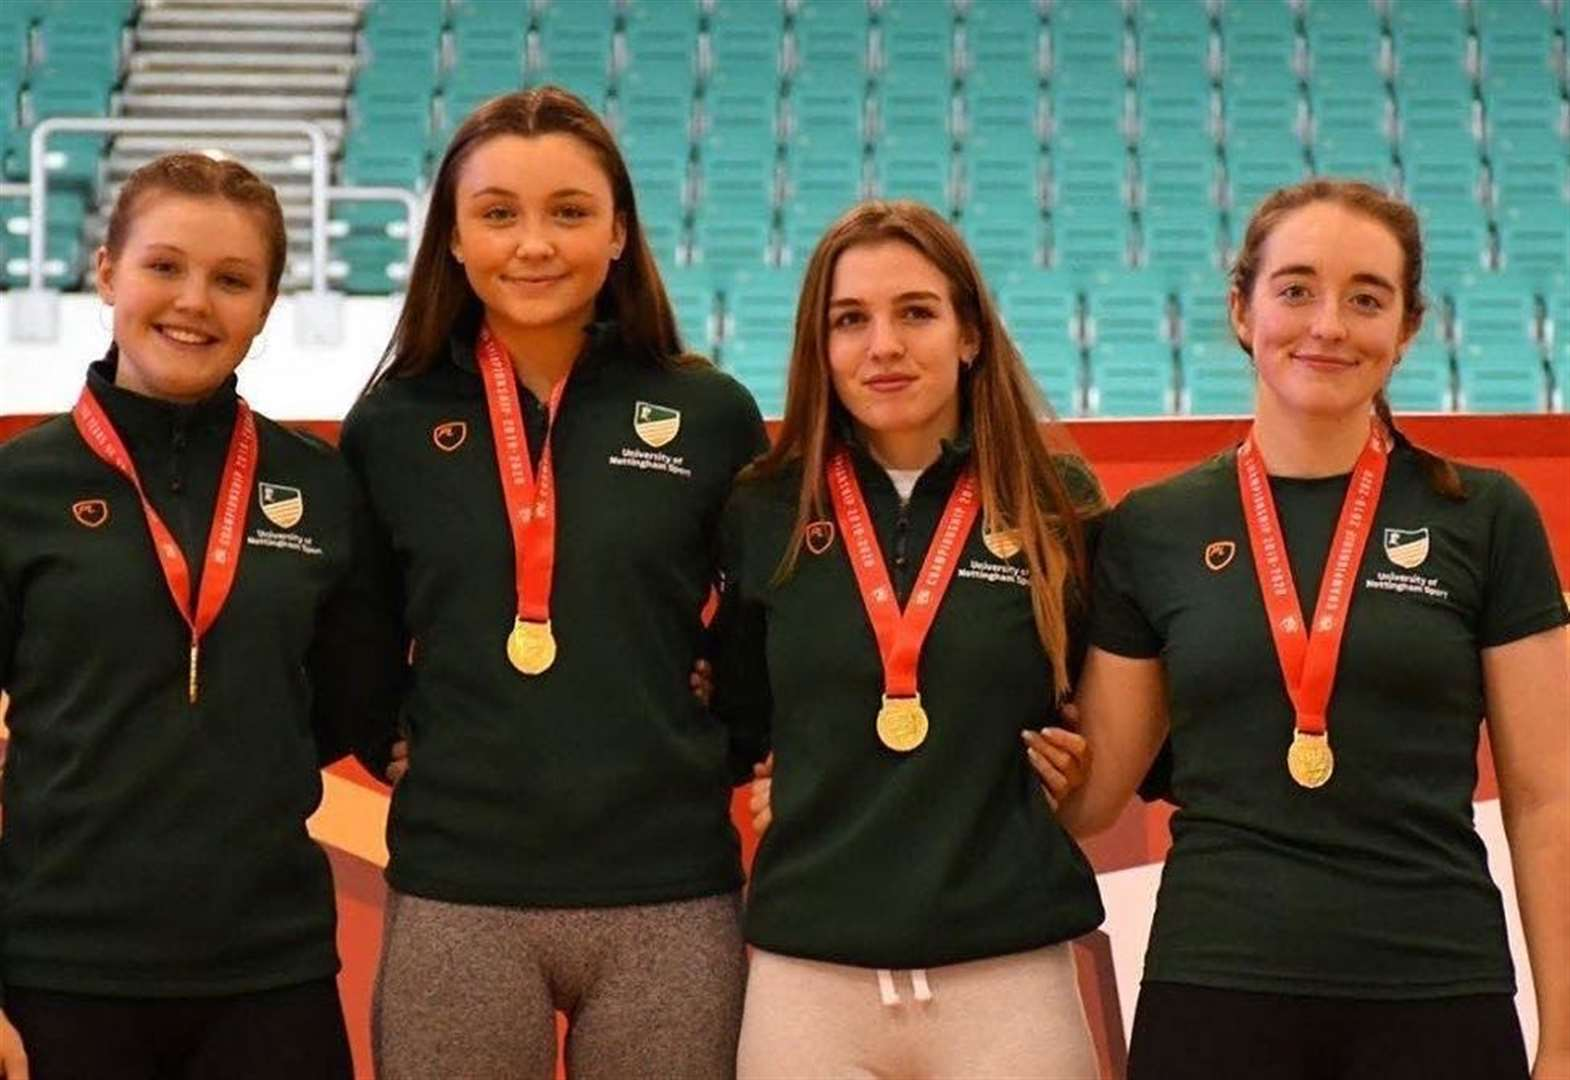 CYCLING: Double gold means big BUCS for Tilly at track championships